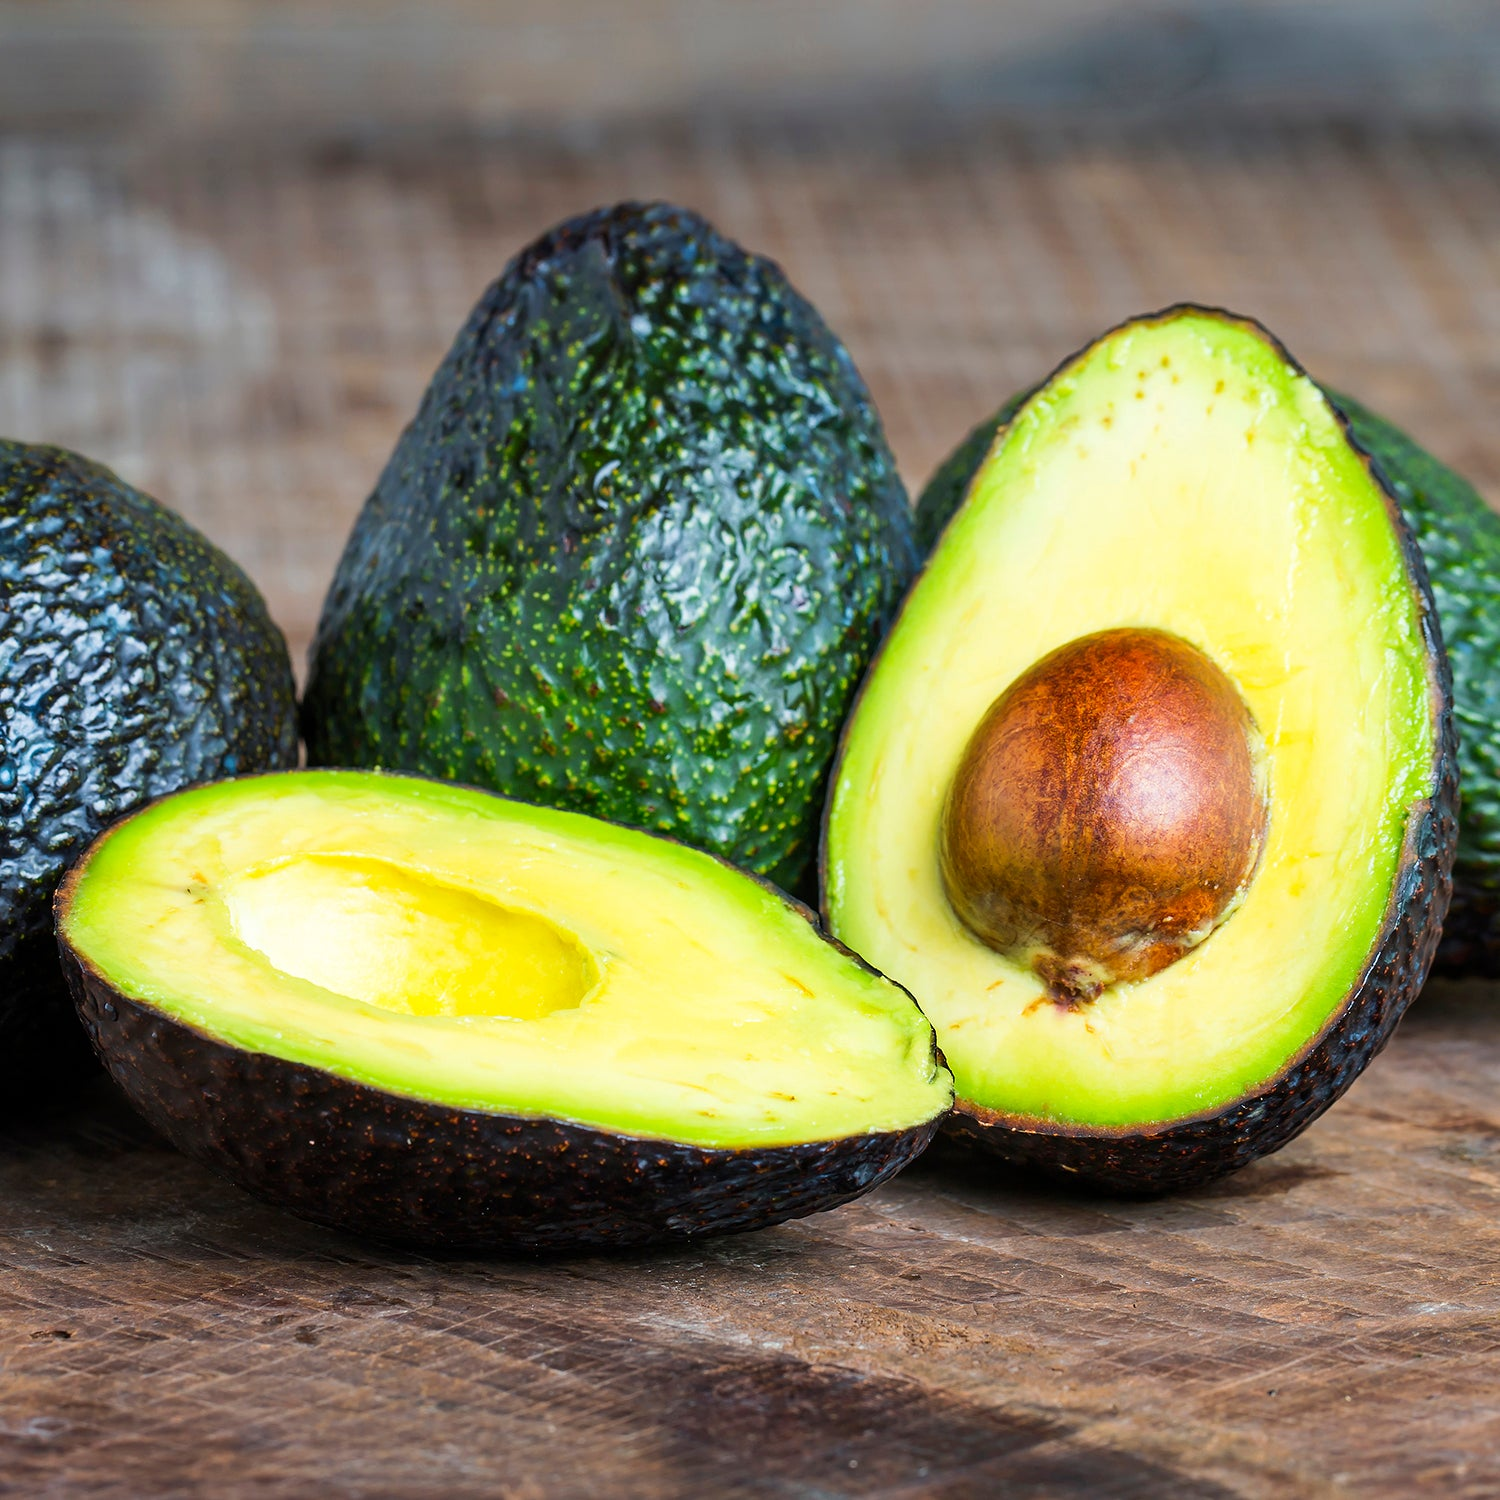 3 Reasons to Love Avocado Oil